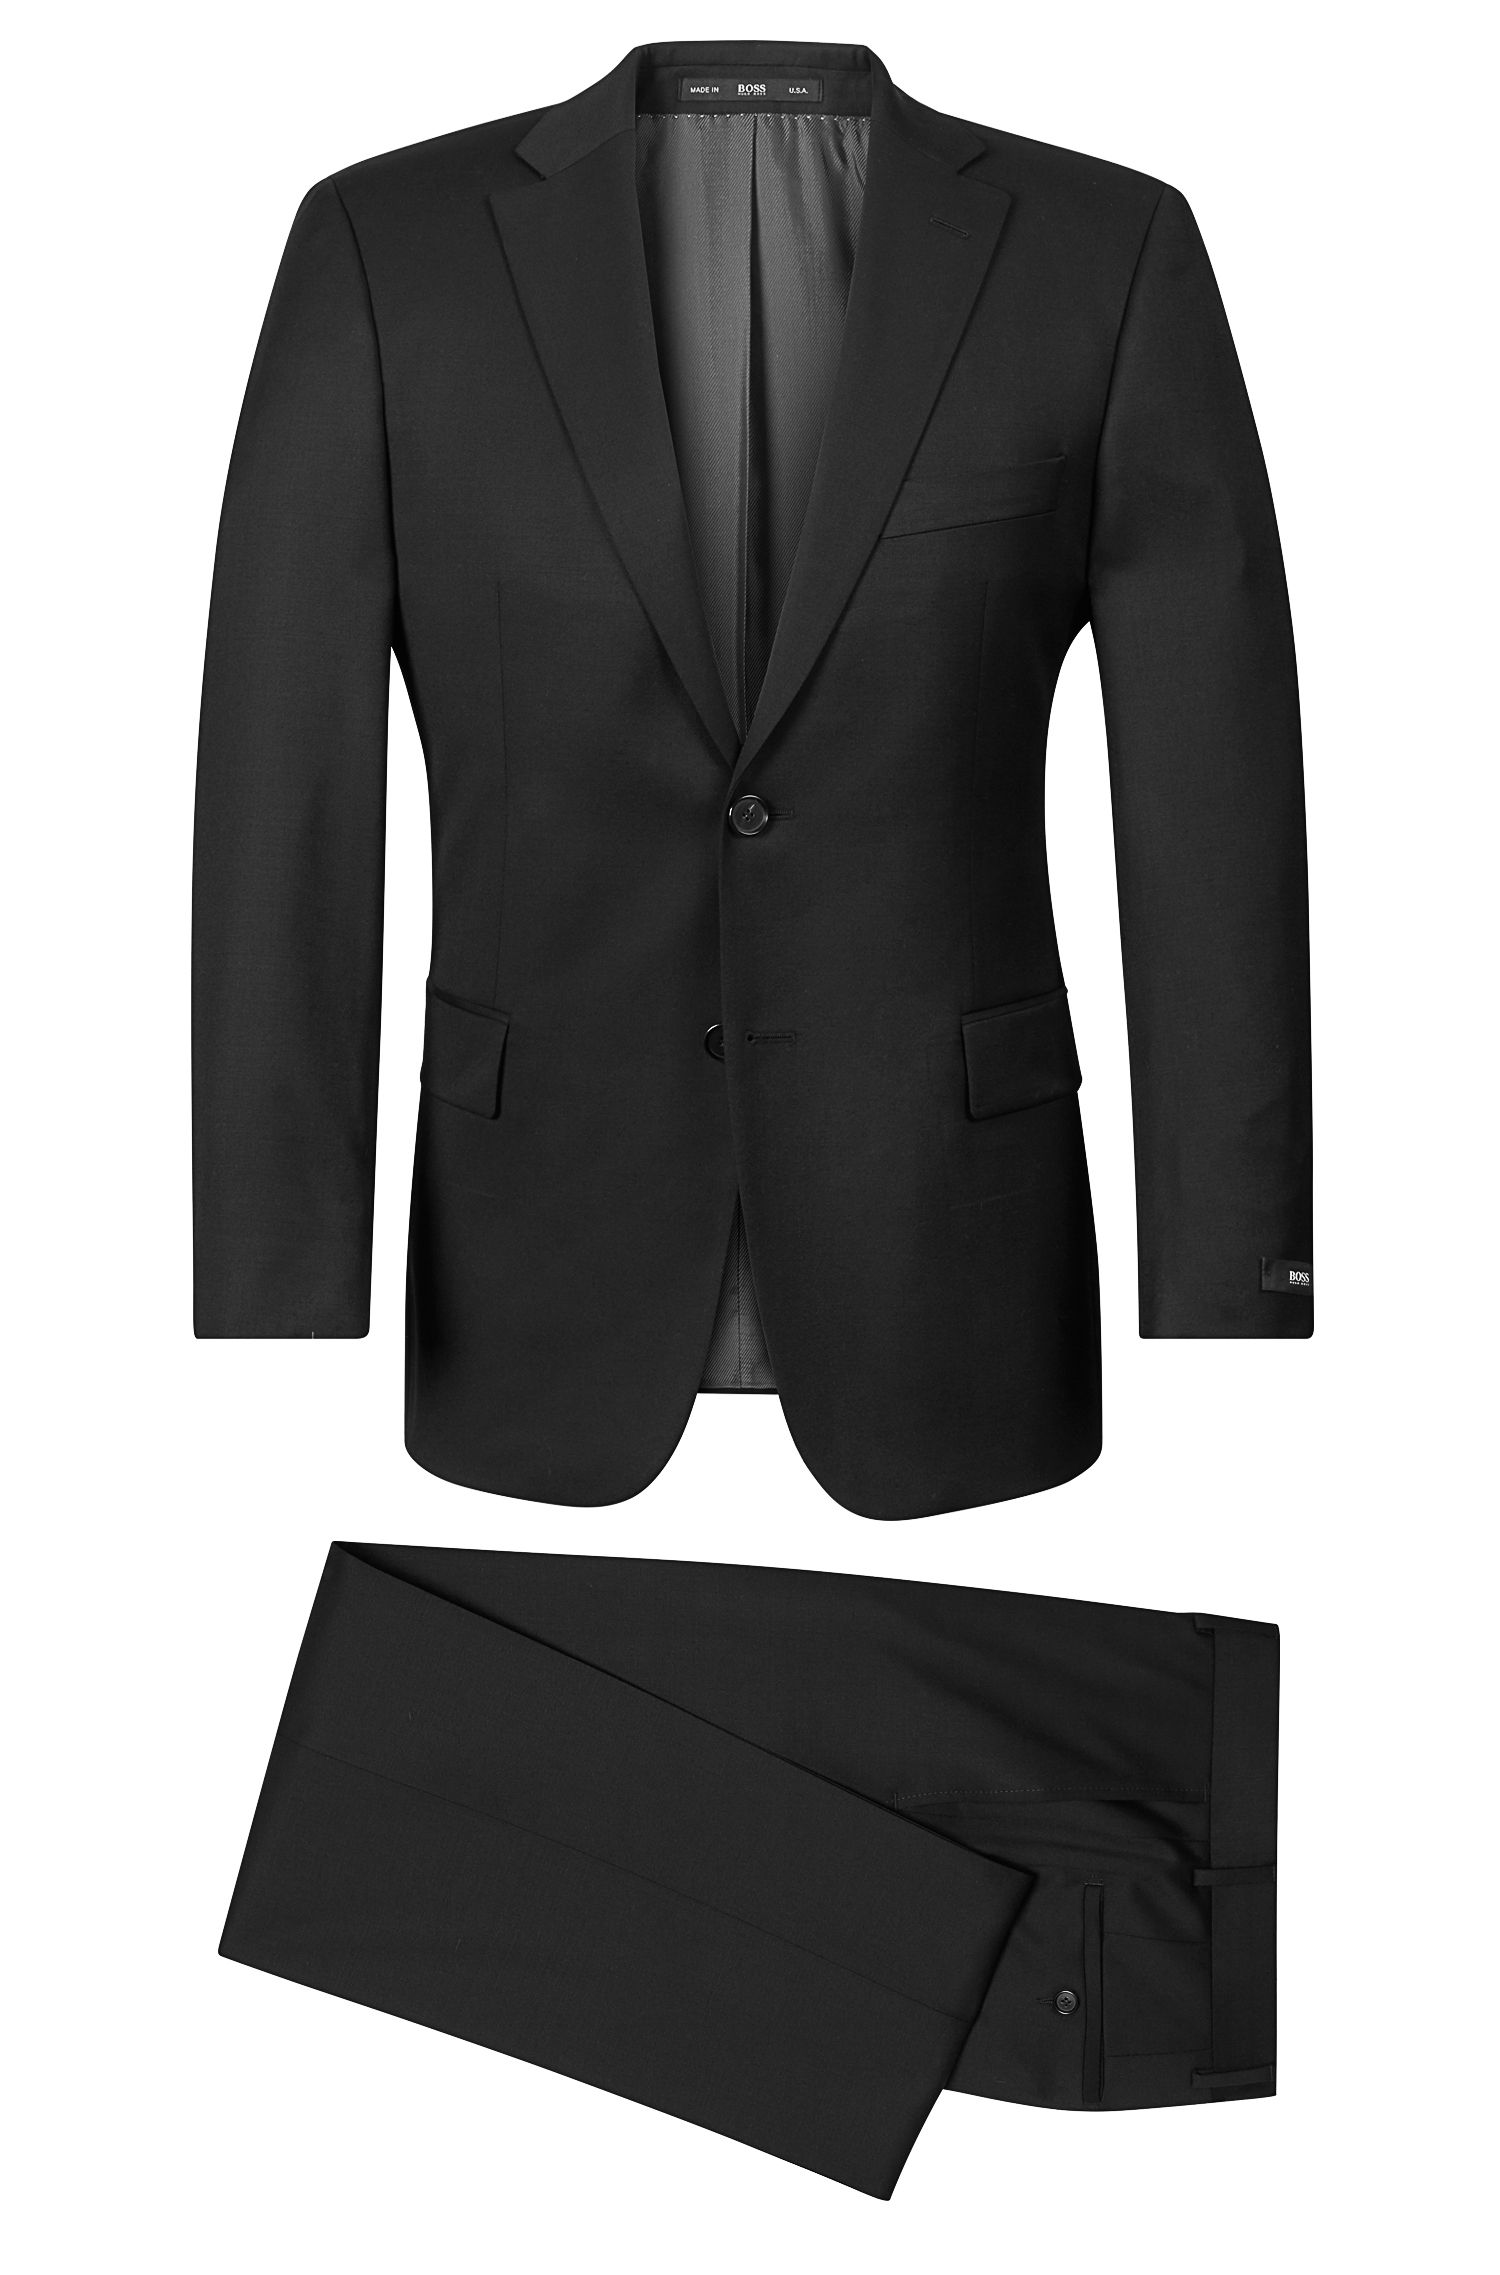 'Pasolini/Movie' | Comfort Fit, Super 100 Virgin Wool Suit